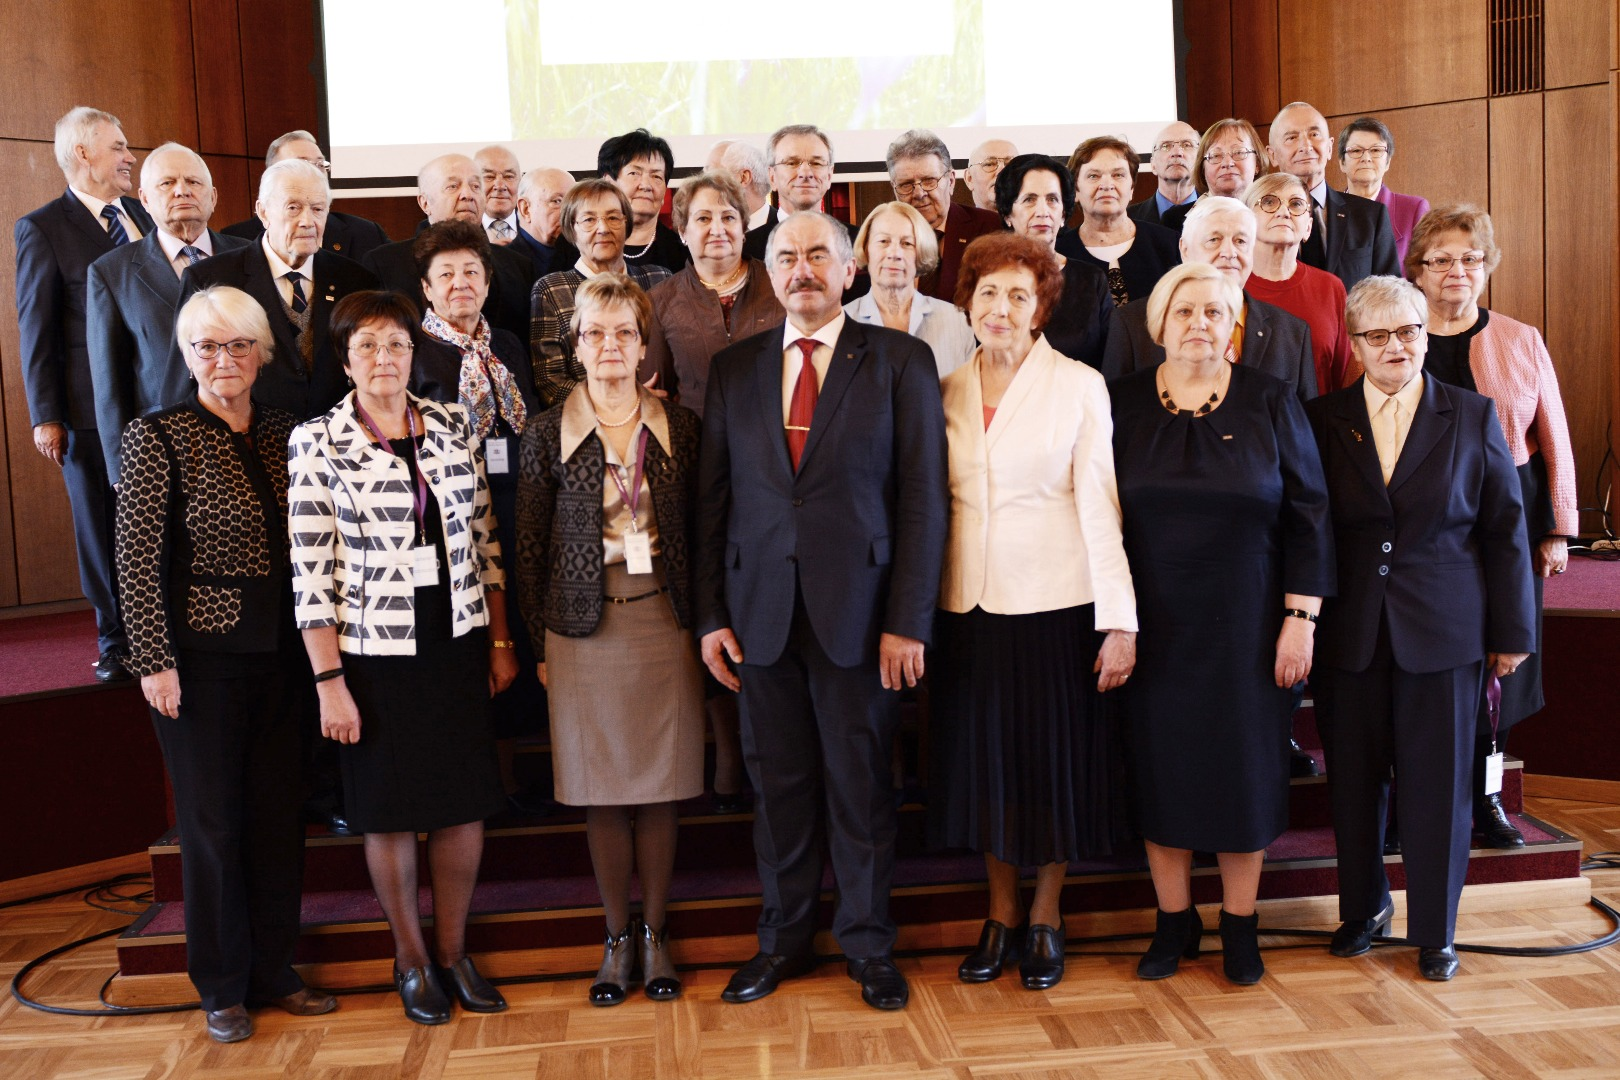 """12.04.2018. The retired employees of the Ministry of Justice, judges, prosecutors, lawyers and notaries were invited to attend the joint event of the judiciary – """"Seniors' Day"""". The seniors were addressed by officials of the judiciary, participants took delight in musical performances of the mixed choir of the Latvian Collegium of Sworn Advocates and watched the movie """"Senators""""."""